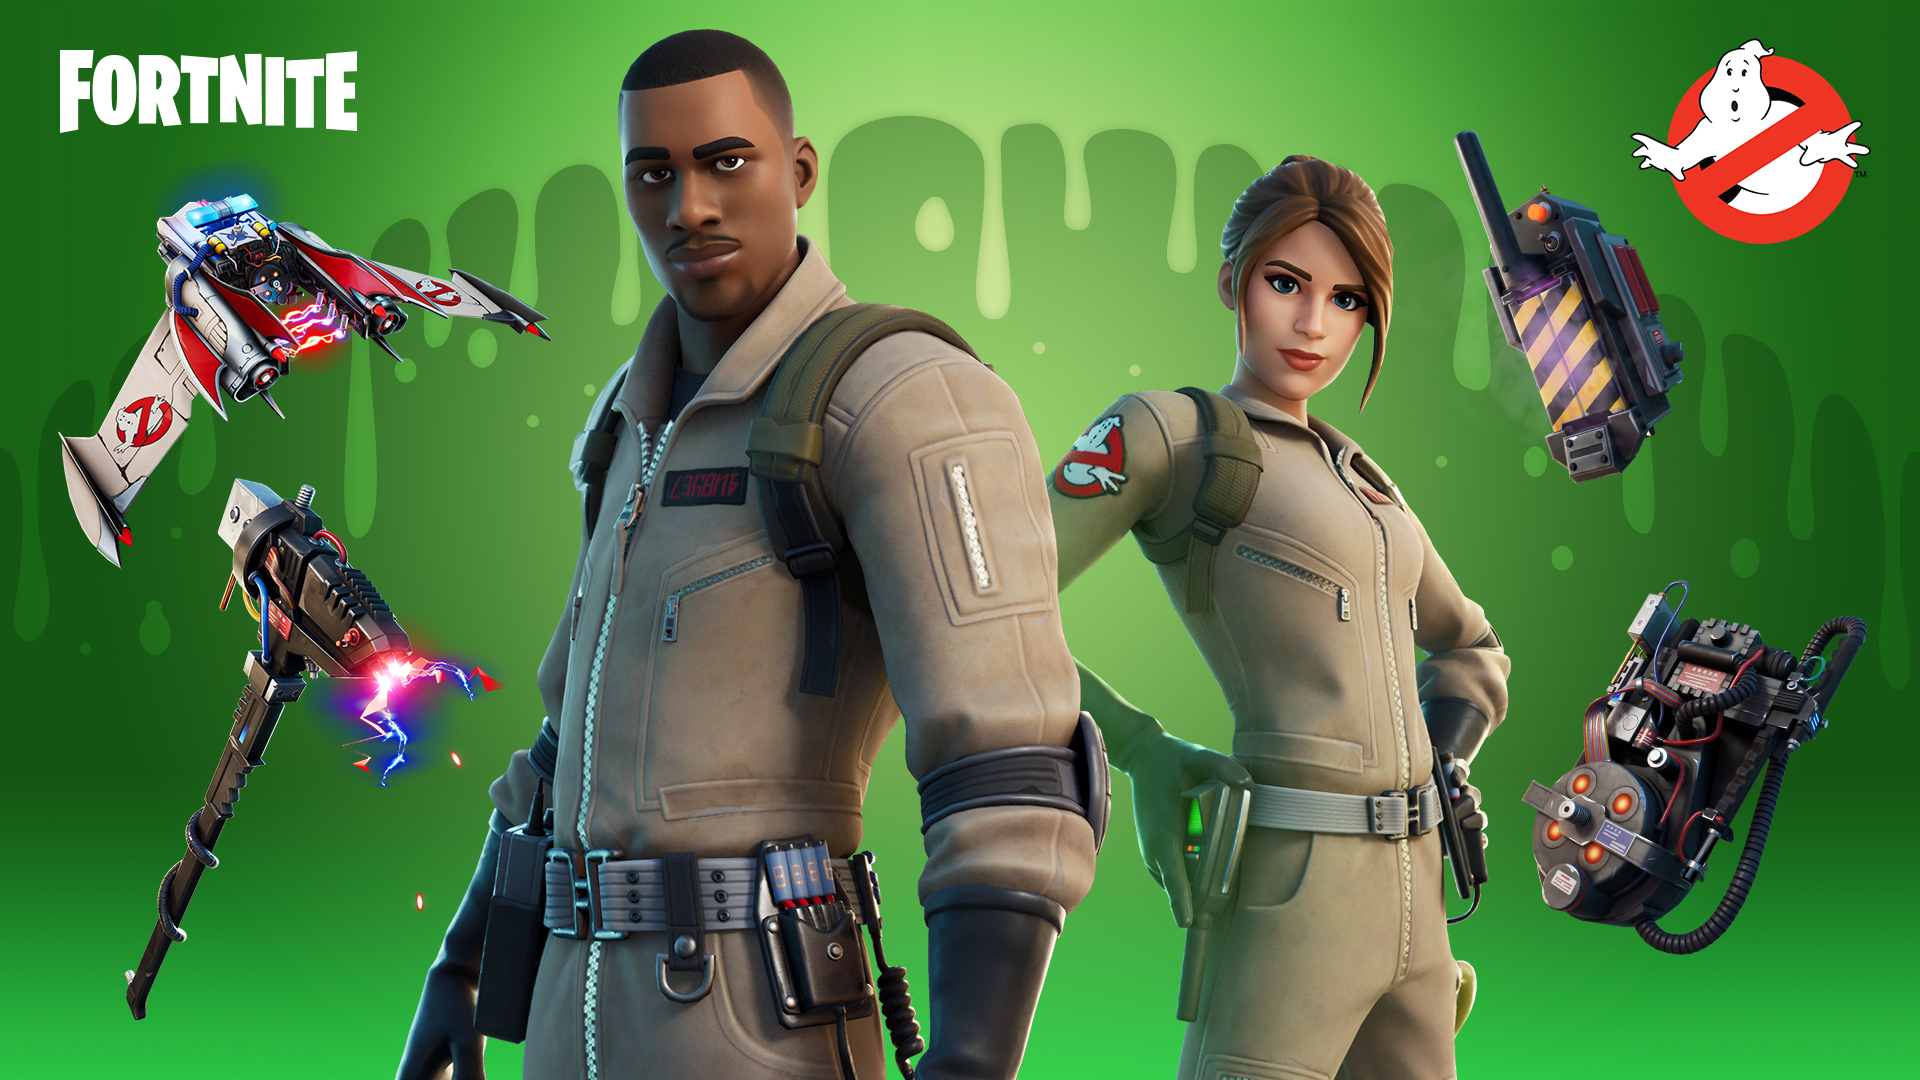 Celebrate Halloween with new Fortnite Ghostbusters skins and cosmetics